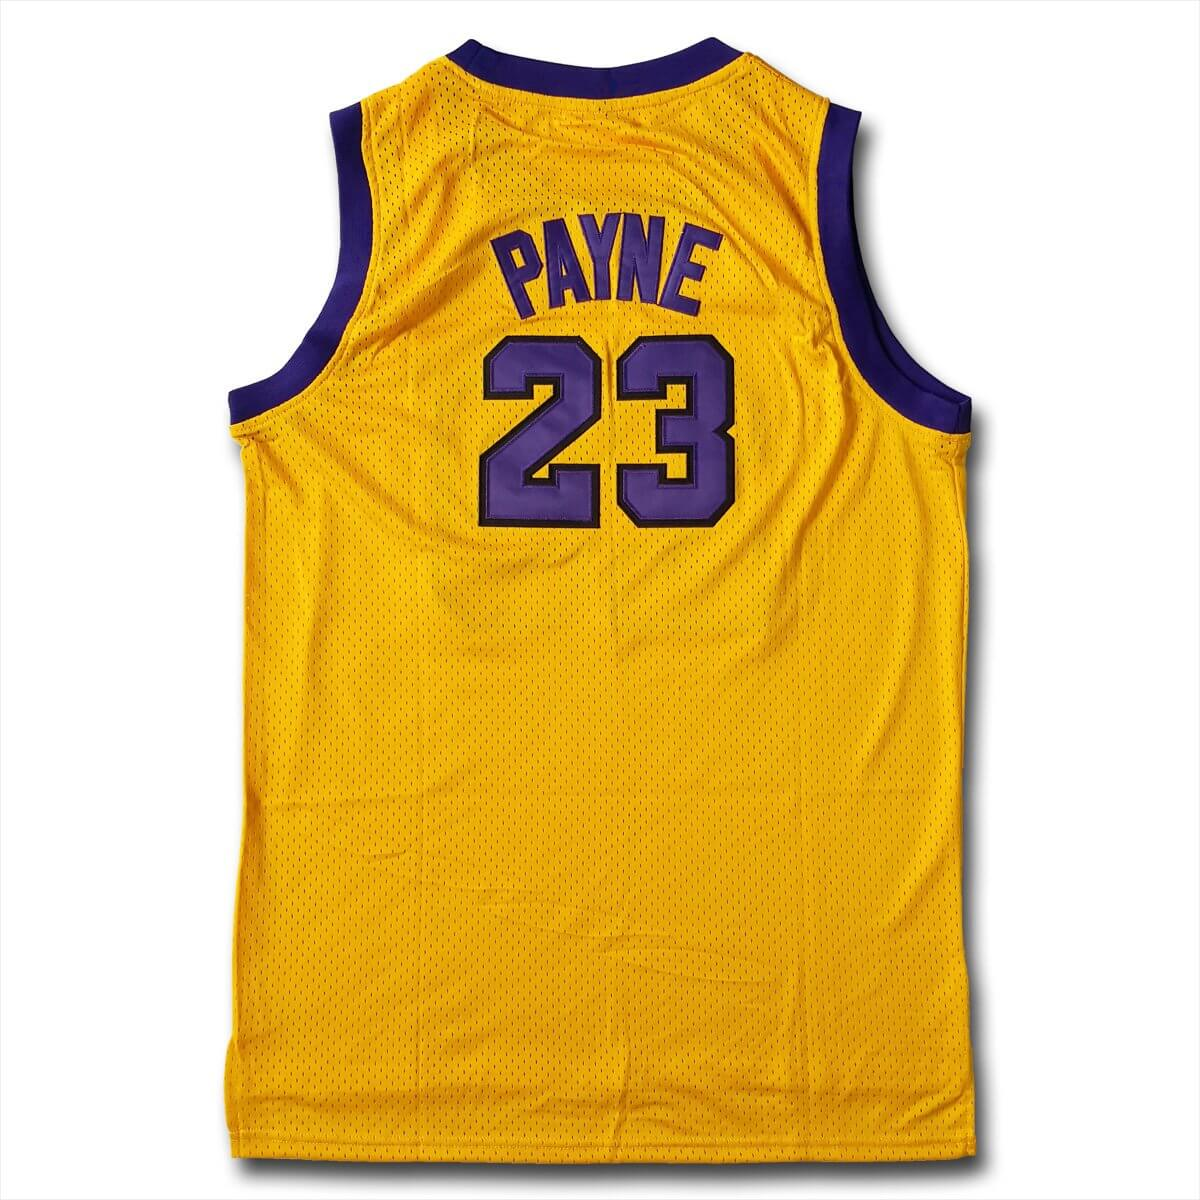 Martin Payne 23 Basketball Jersey Fully Stitched